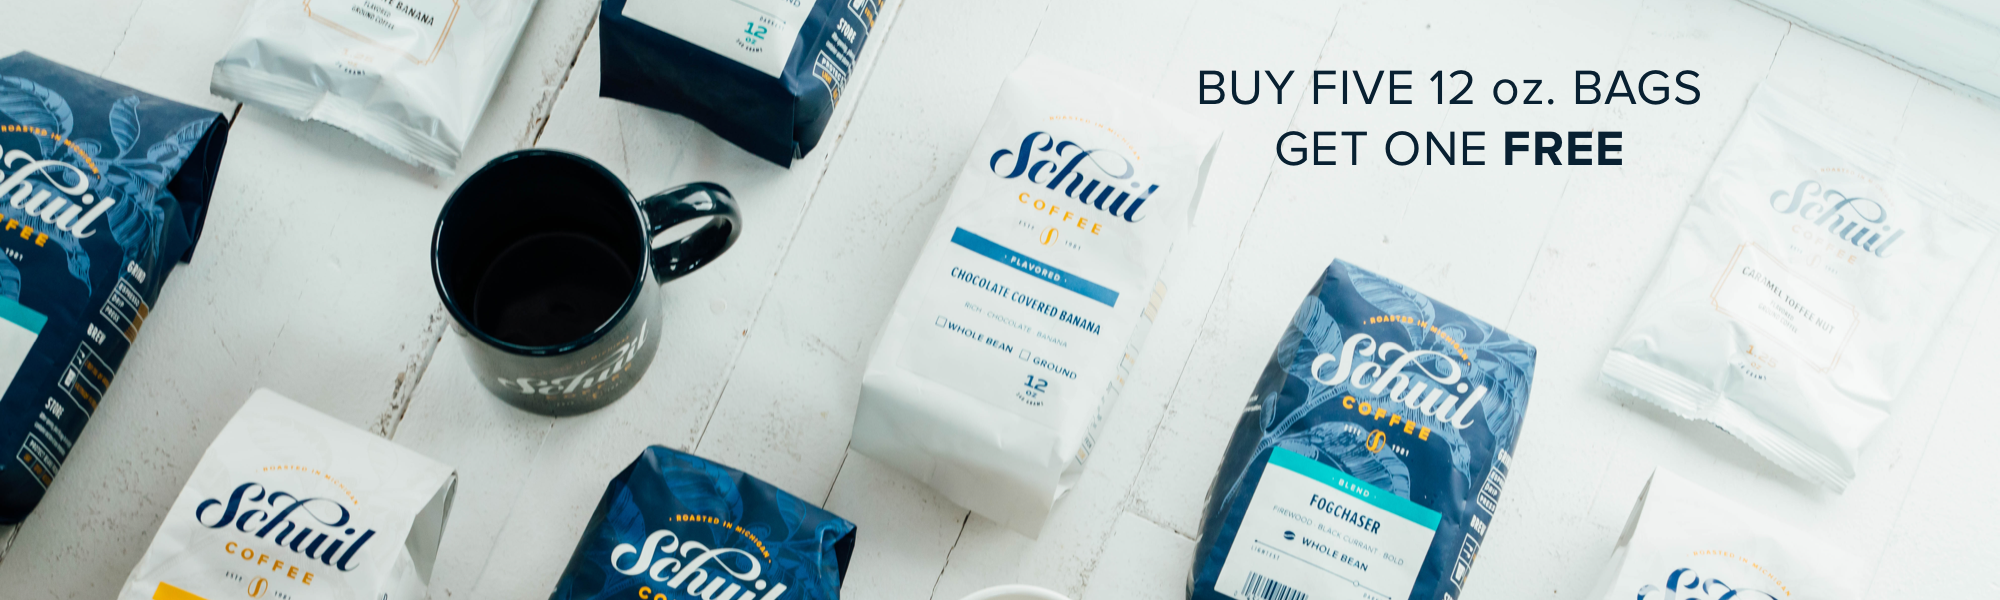 Schuil Coffee Buy Five Get One Free